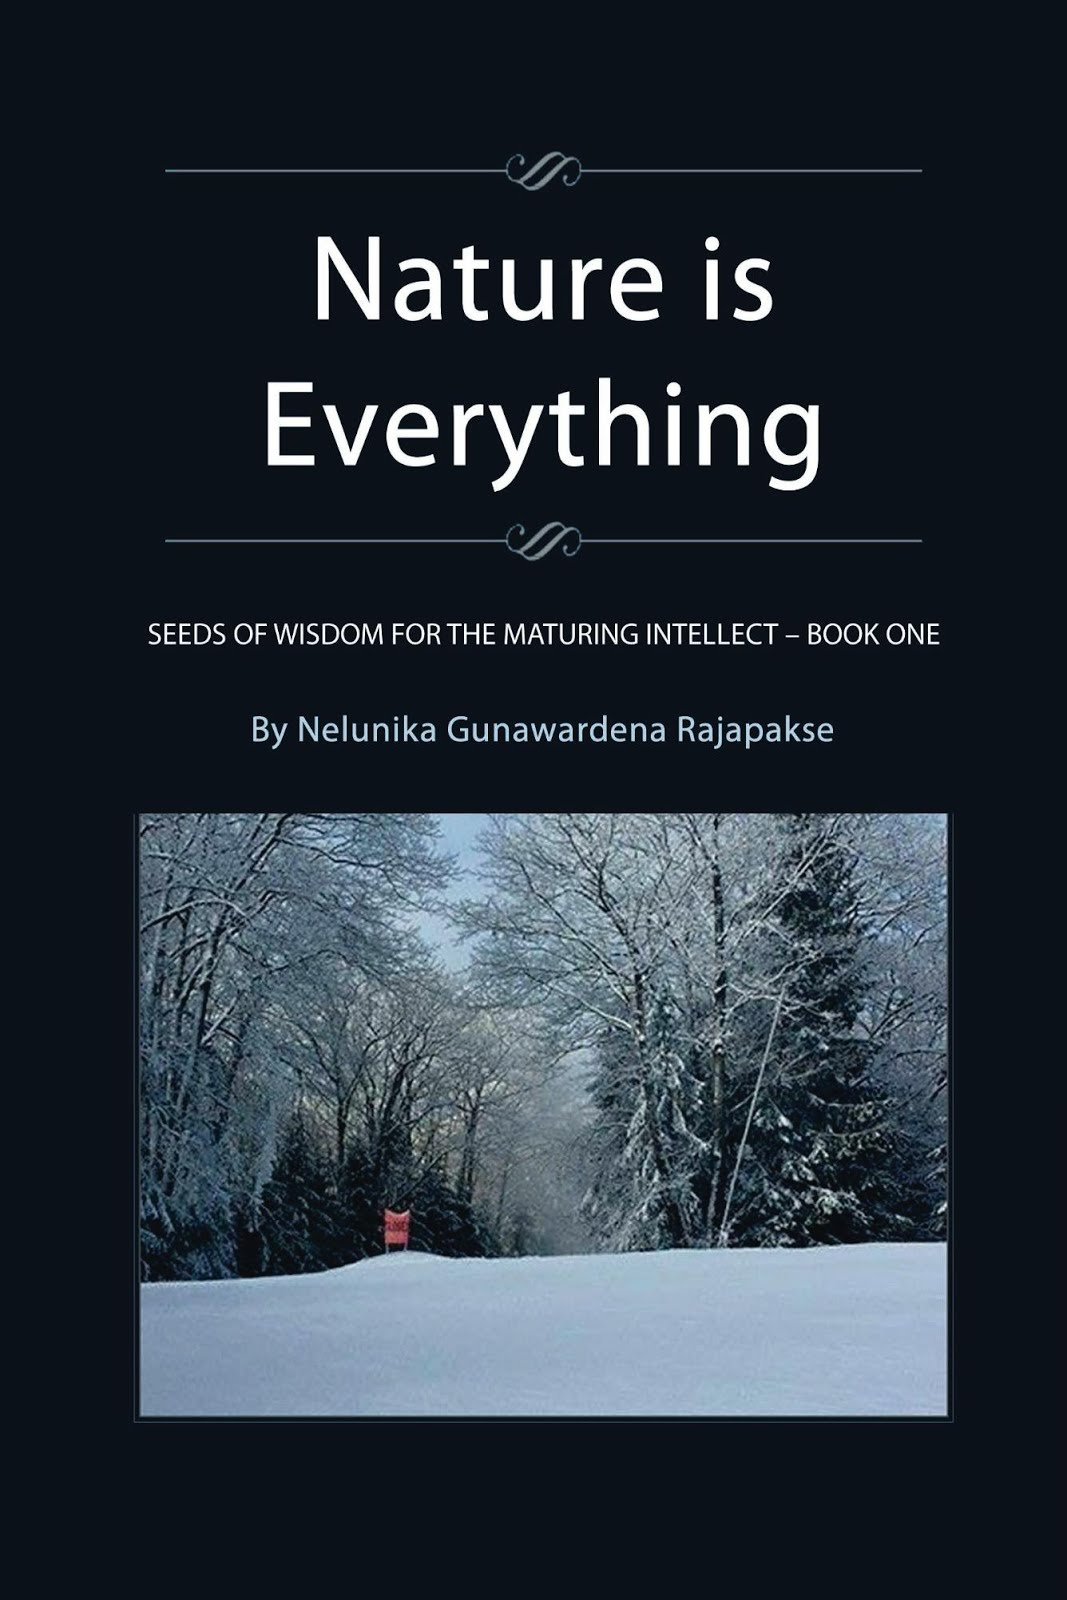 NATURE IS EVERYTHING - 'A Seeds of Wisdom Presentation' Book 1